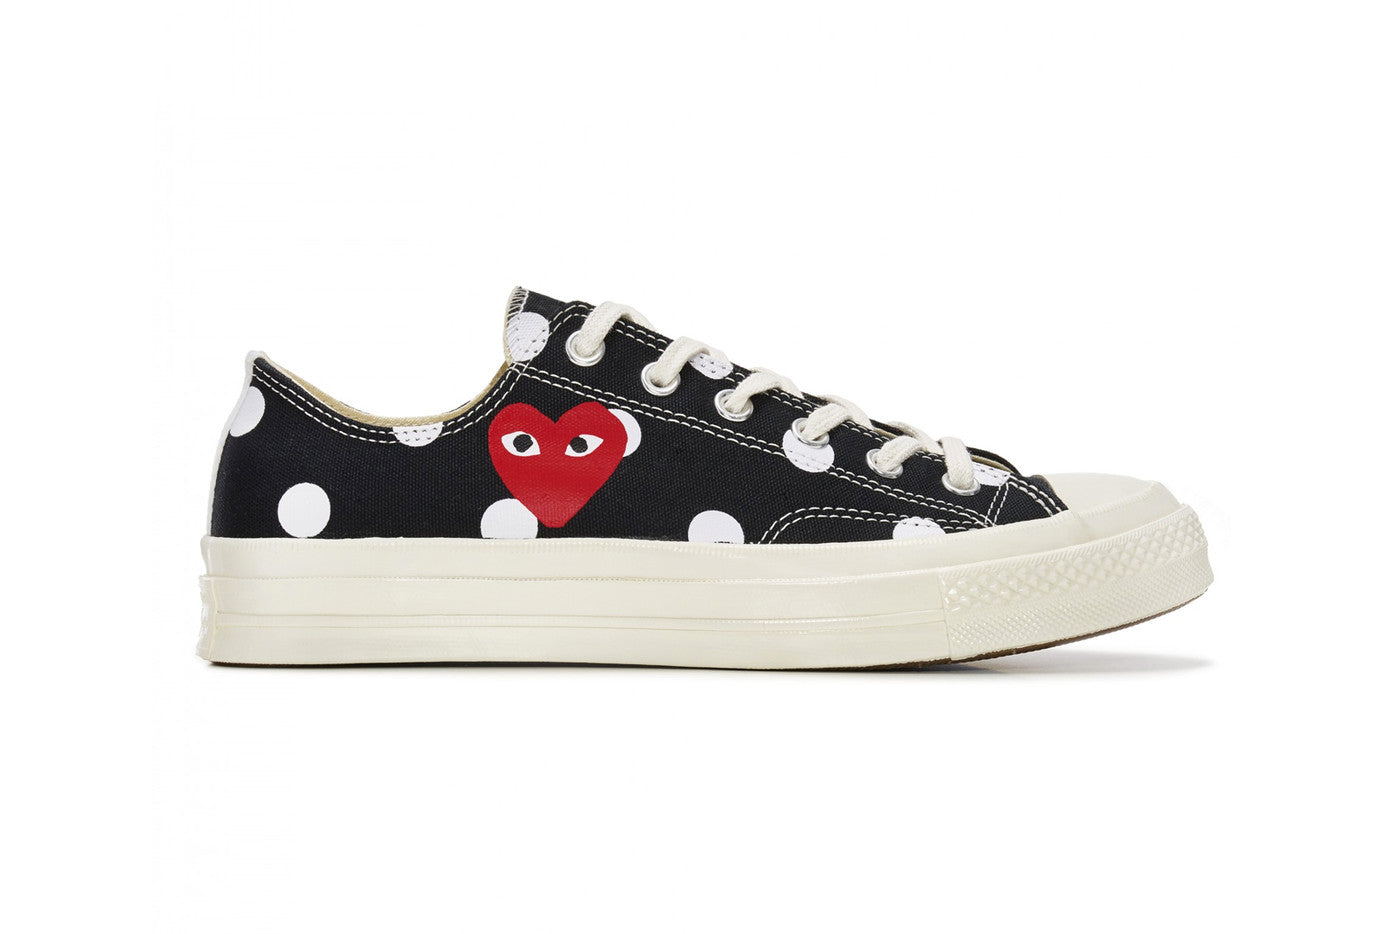 Play Comme des Garçons x Converse Polka Dot Red Heart Chuck Taylor All Star '70 Low - Black #157248C-Preorder Item-Navy Selected Shop